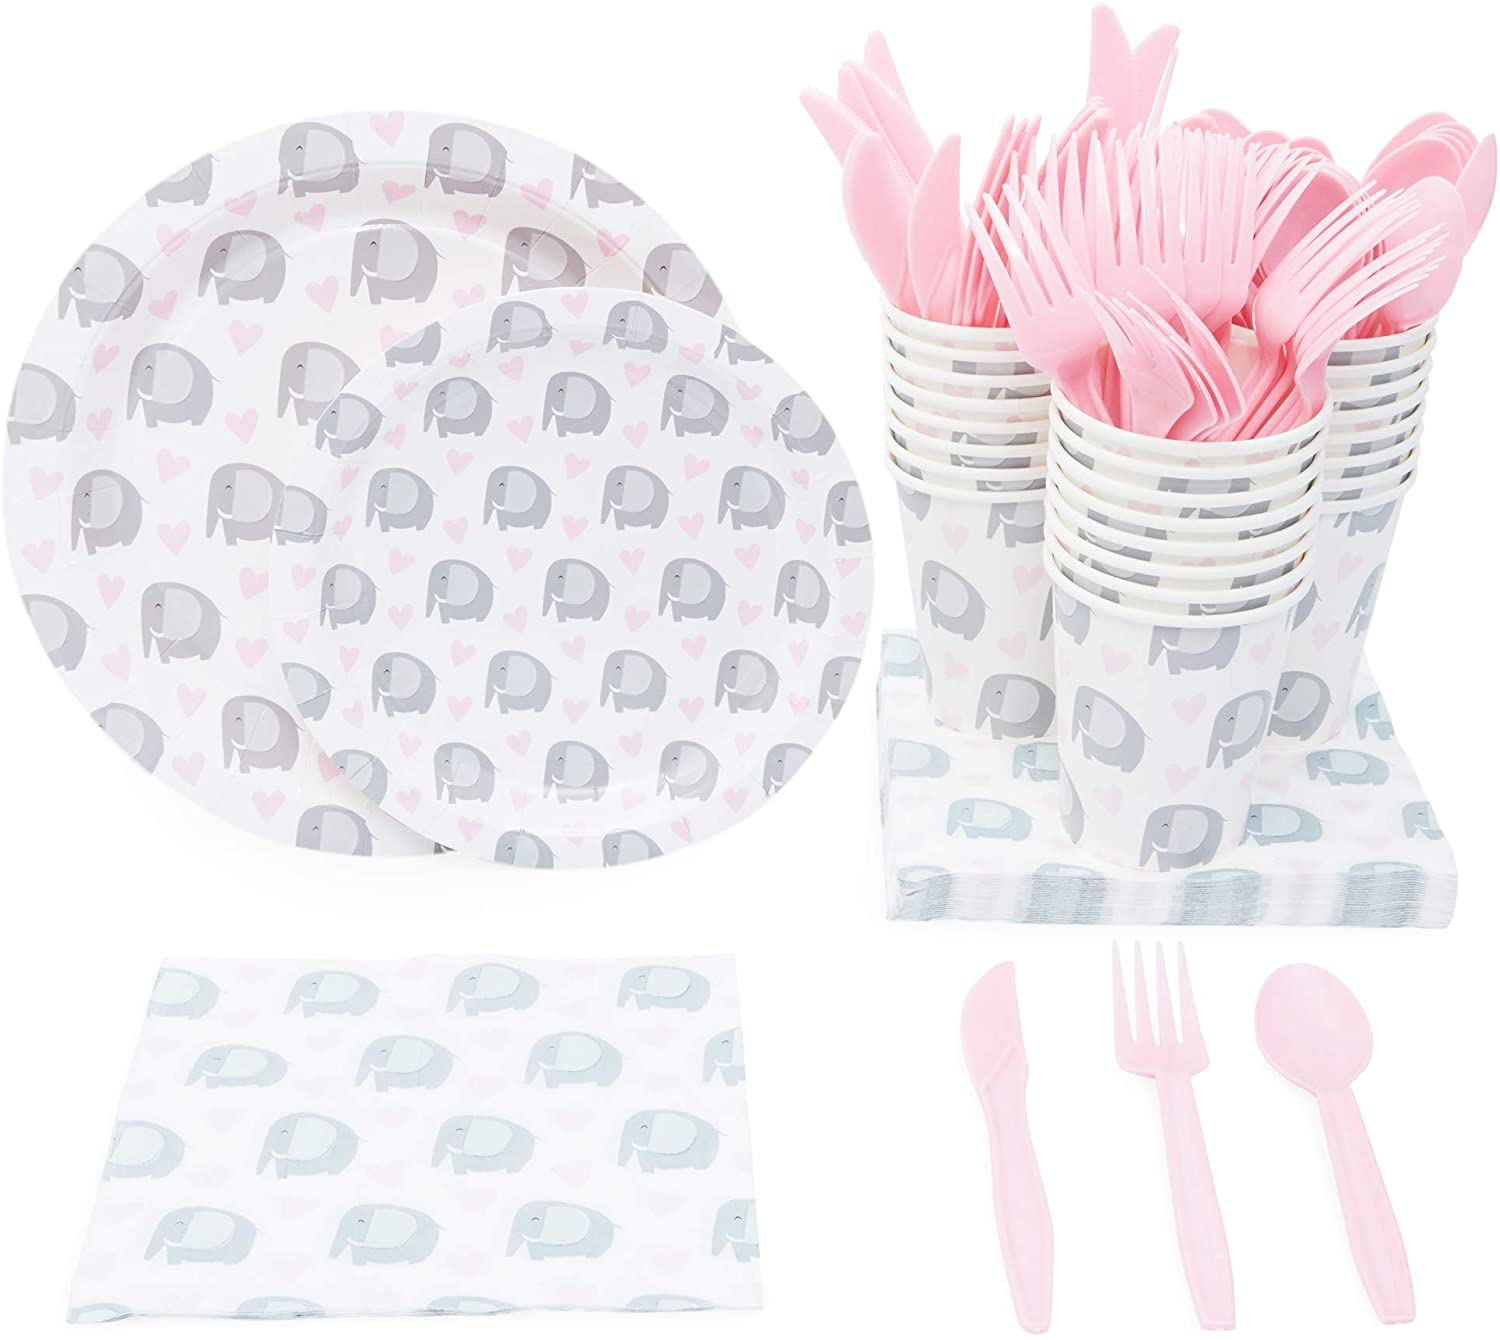 Elephant Themed Party Supplies Pack for Baby Showers (Serves 24)